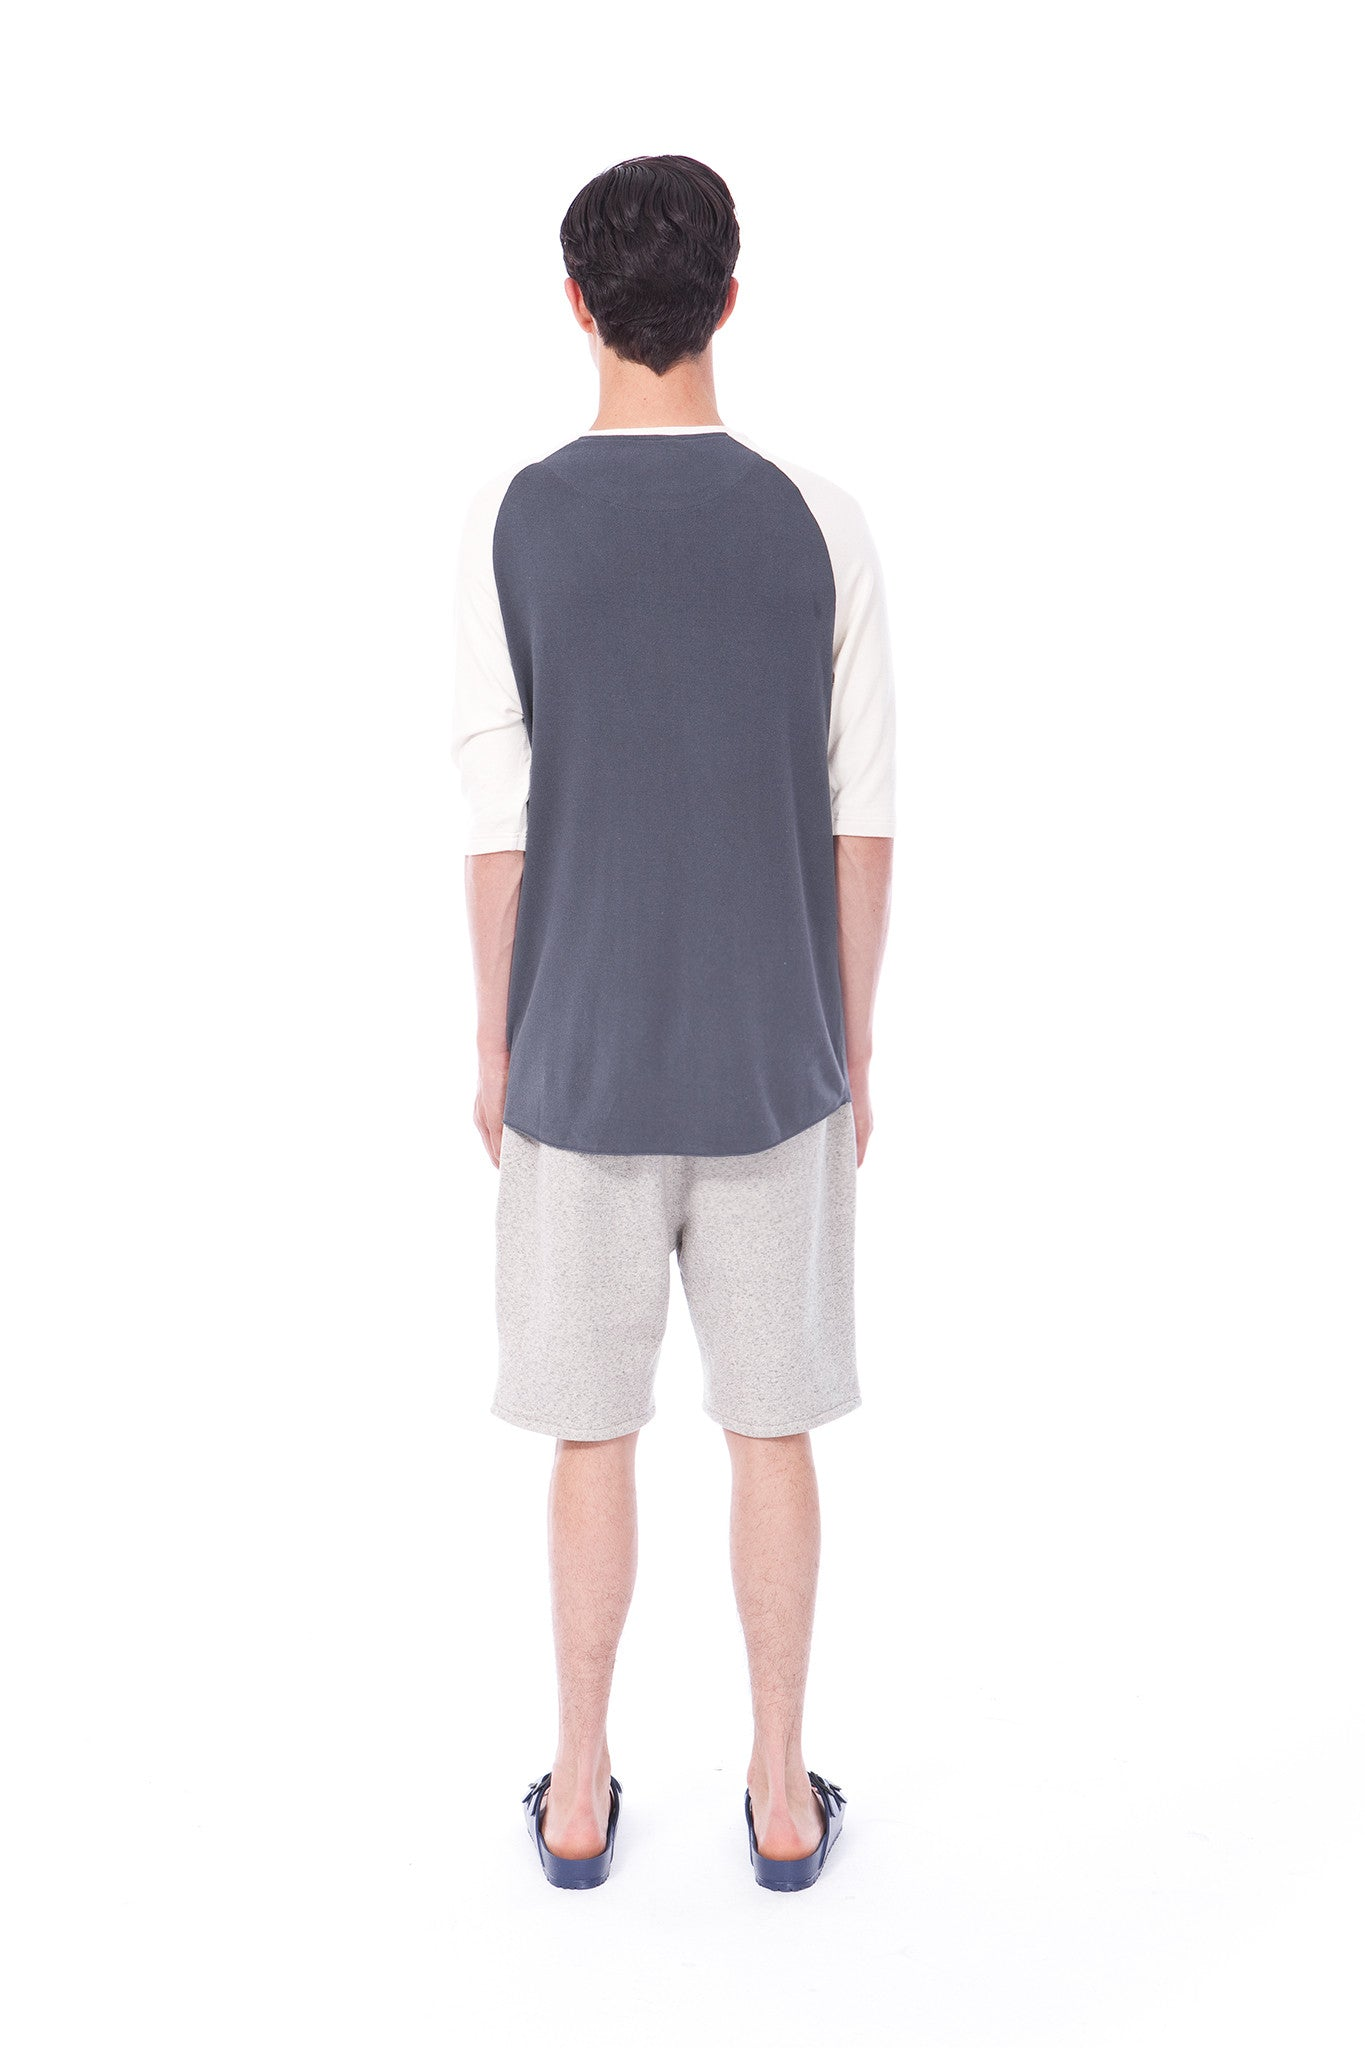 SIMONE - RAW SILK T-SHIRT - OMBRE BLUE